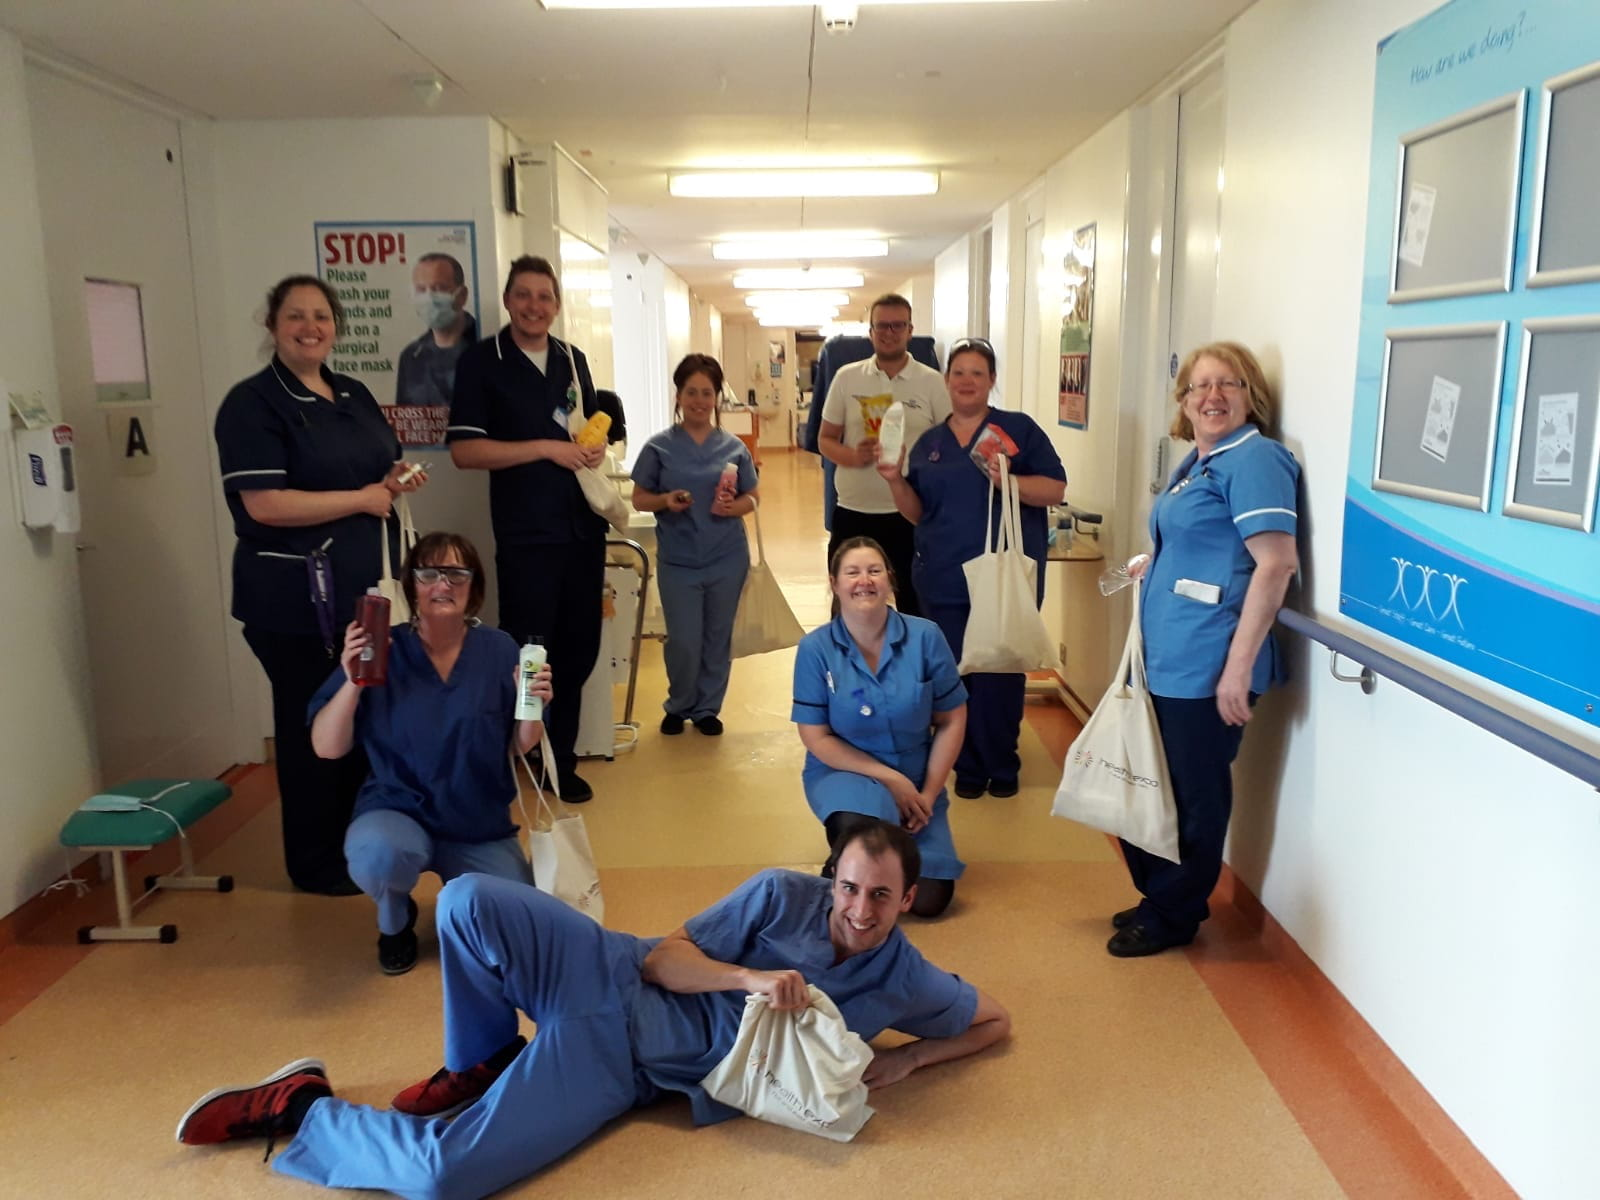 Orsted donates to NHS charities as COVID-19 pandemic continues